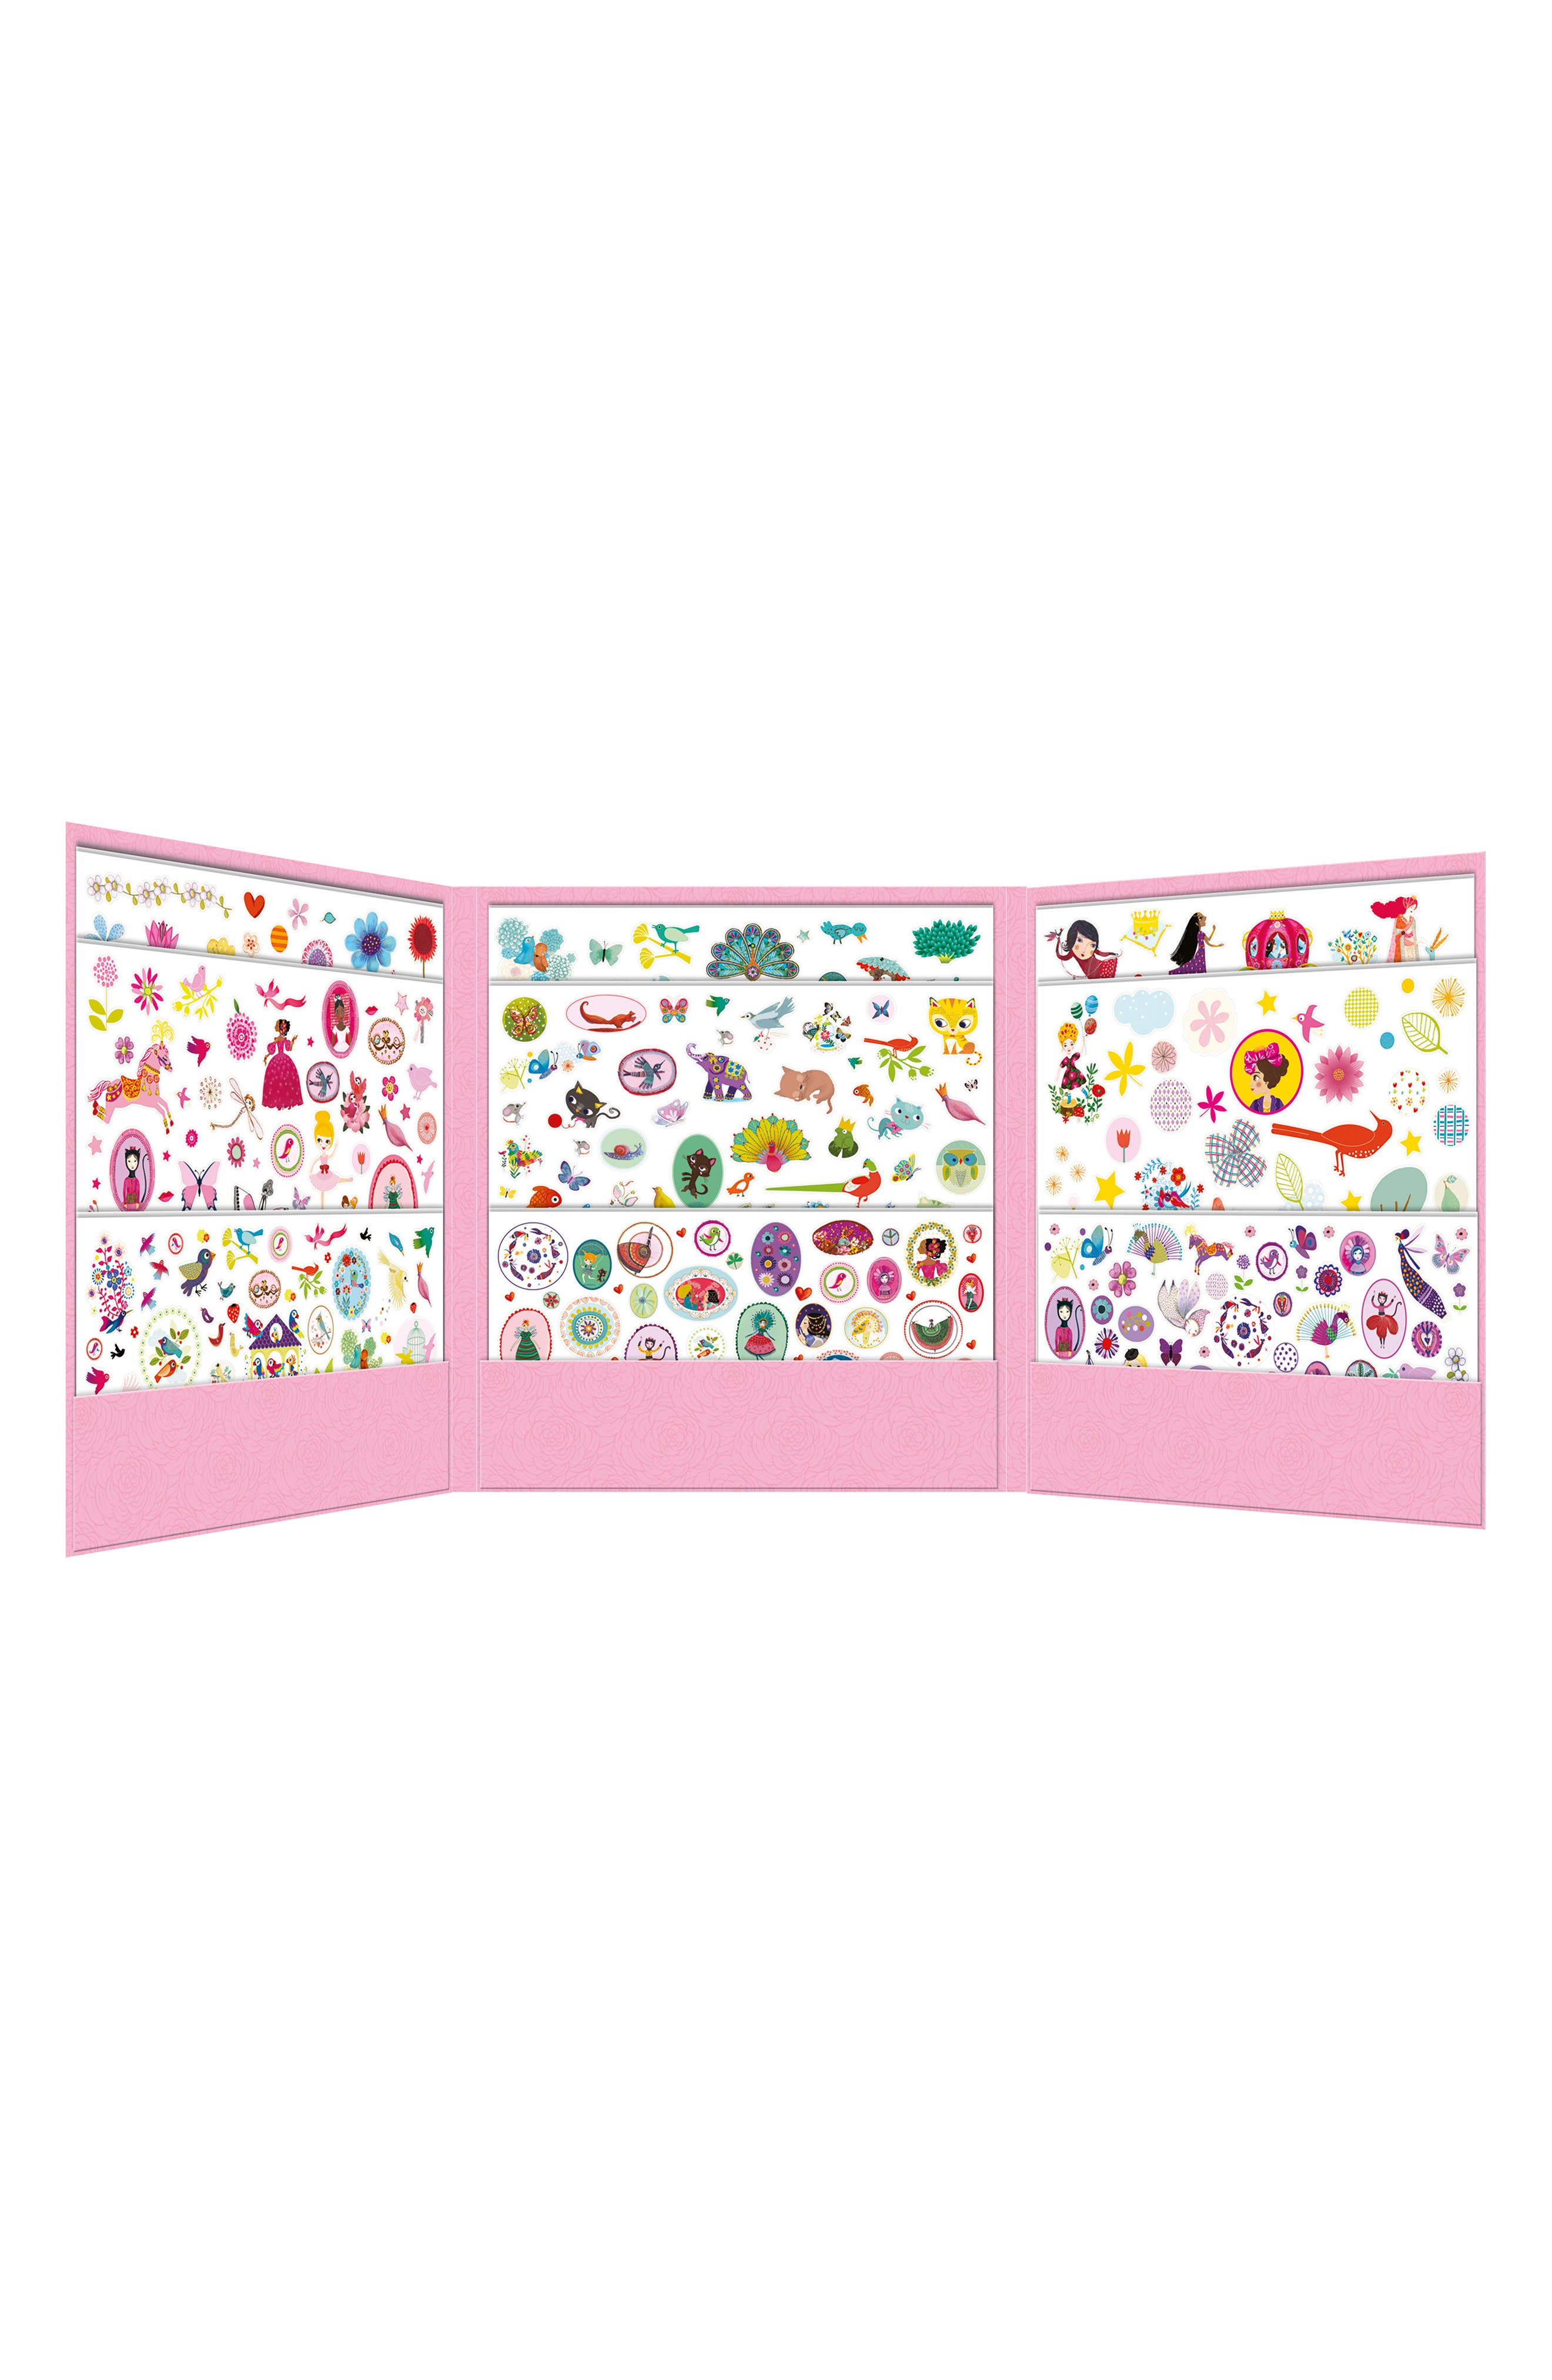 Over 1,000 Stickers for Girls Sticker Collection,                             Alternate thumbnail 2, color,                             100